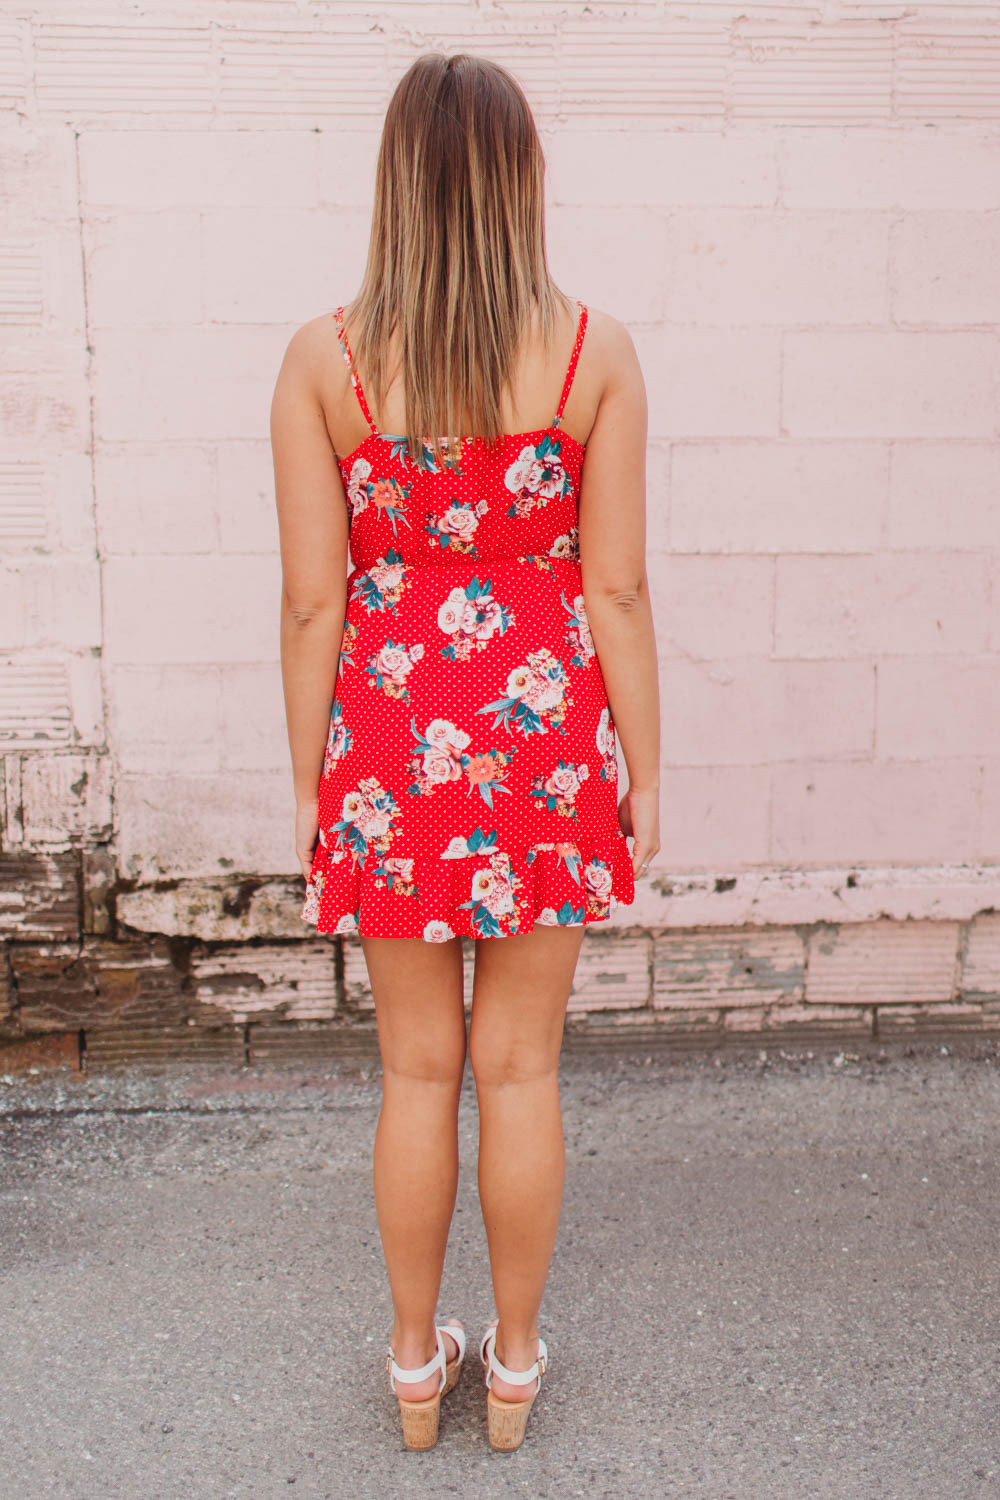 Dress - Floral Wrap Dress with Ruffles